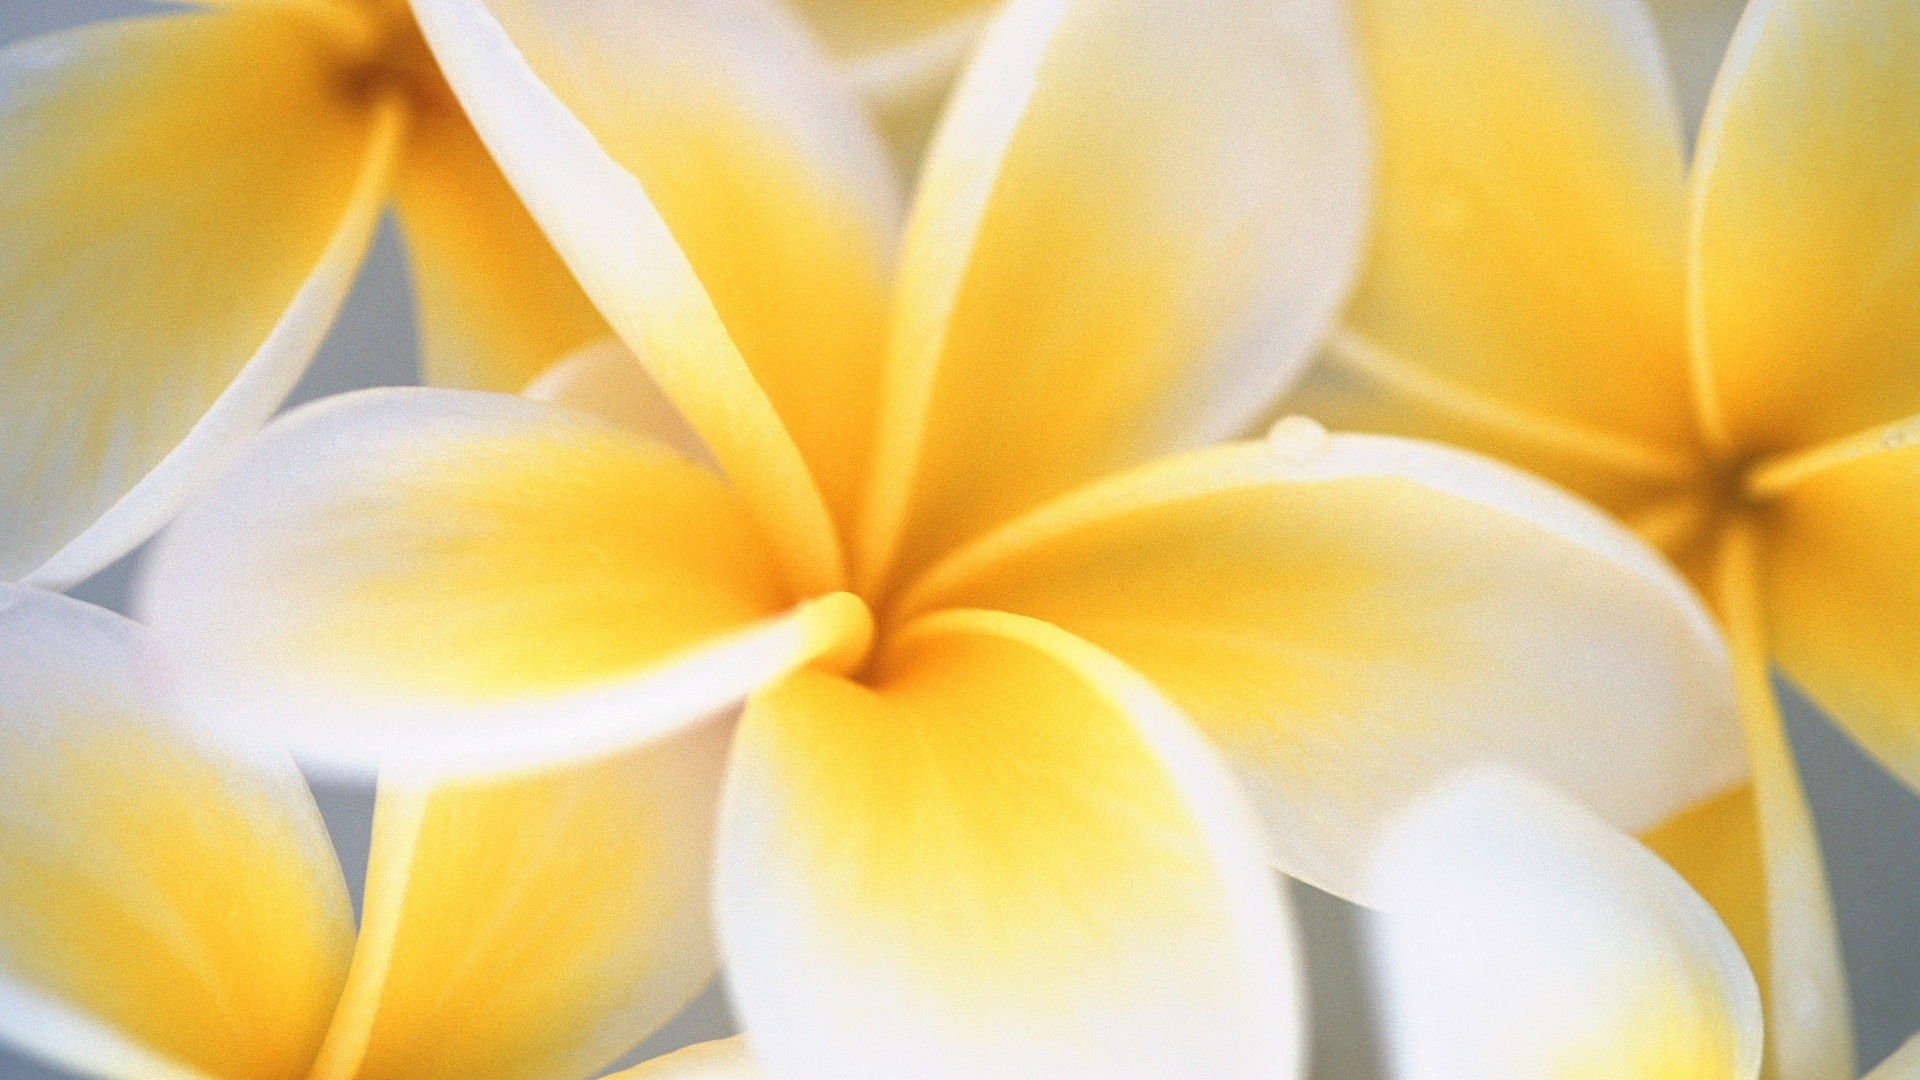 yellow flower hd wallpapers wallpaper cave yellow flower hd wallpapers wallpaper